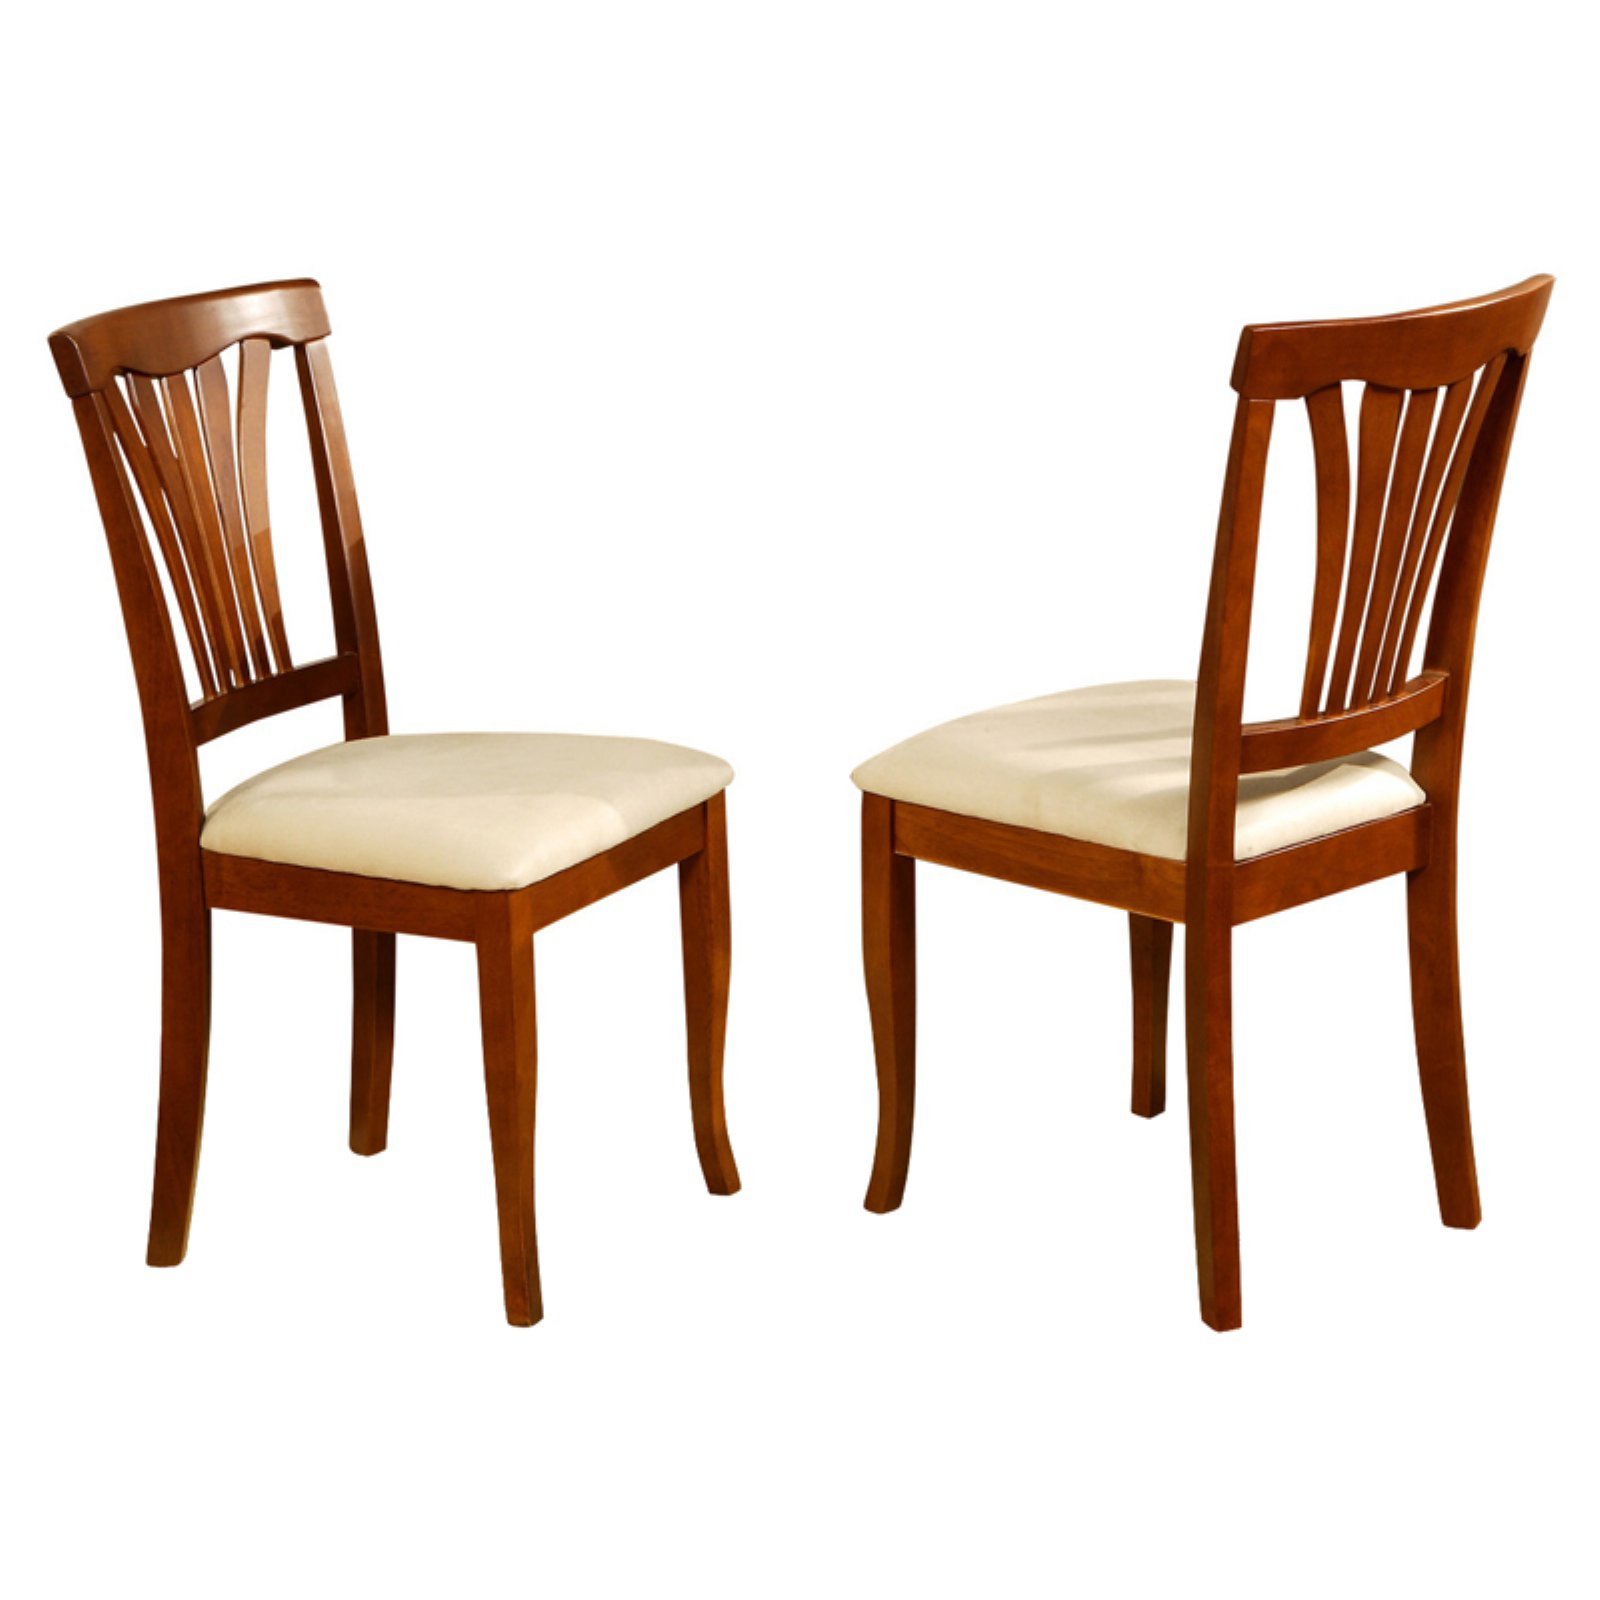 Phenomenal East West Furniture Avon Dining Chair With Microfiber Seat Gmtry Best Dining Table And Chair Ideas Images Gmtryco